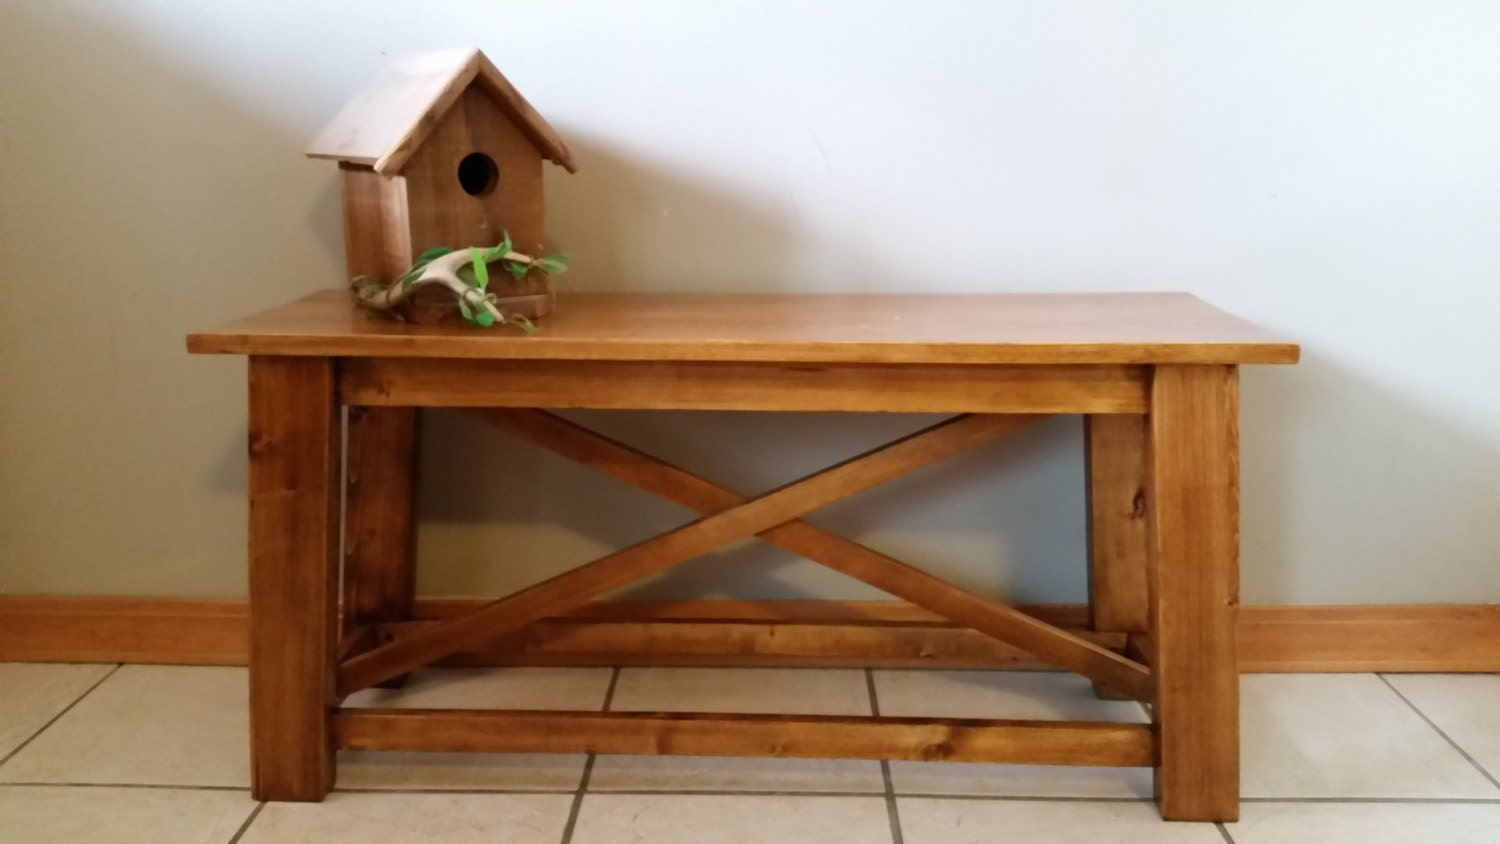 Rustic Wooden Foyer Bench : Rustic entryway bench wood benches